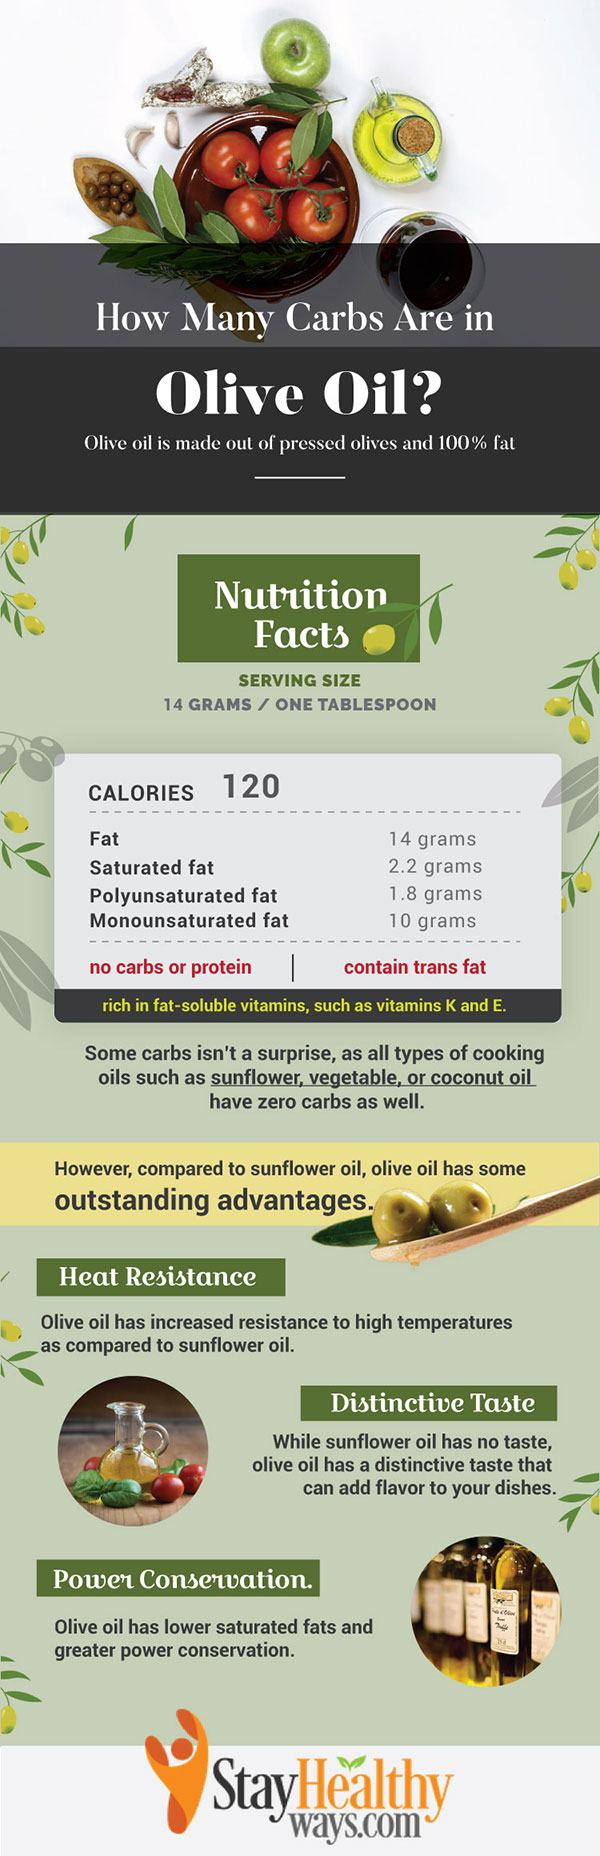 carbs in olive oil infographic